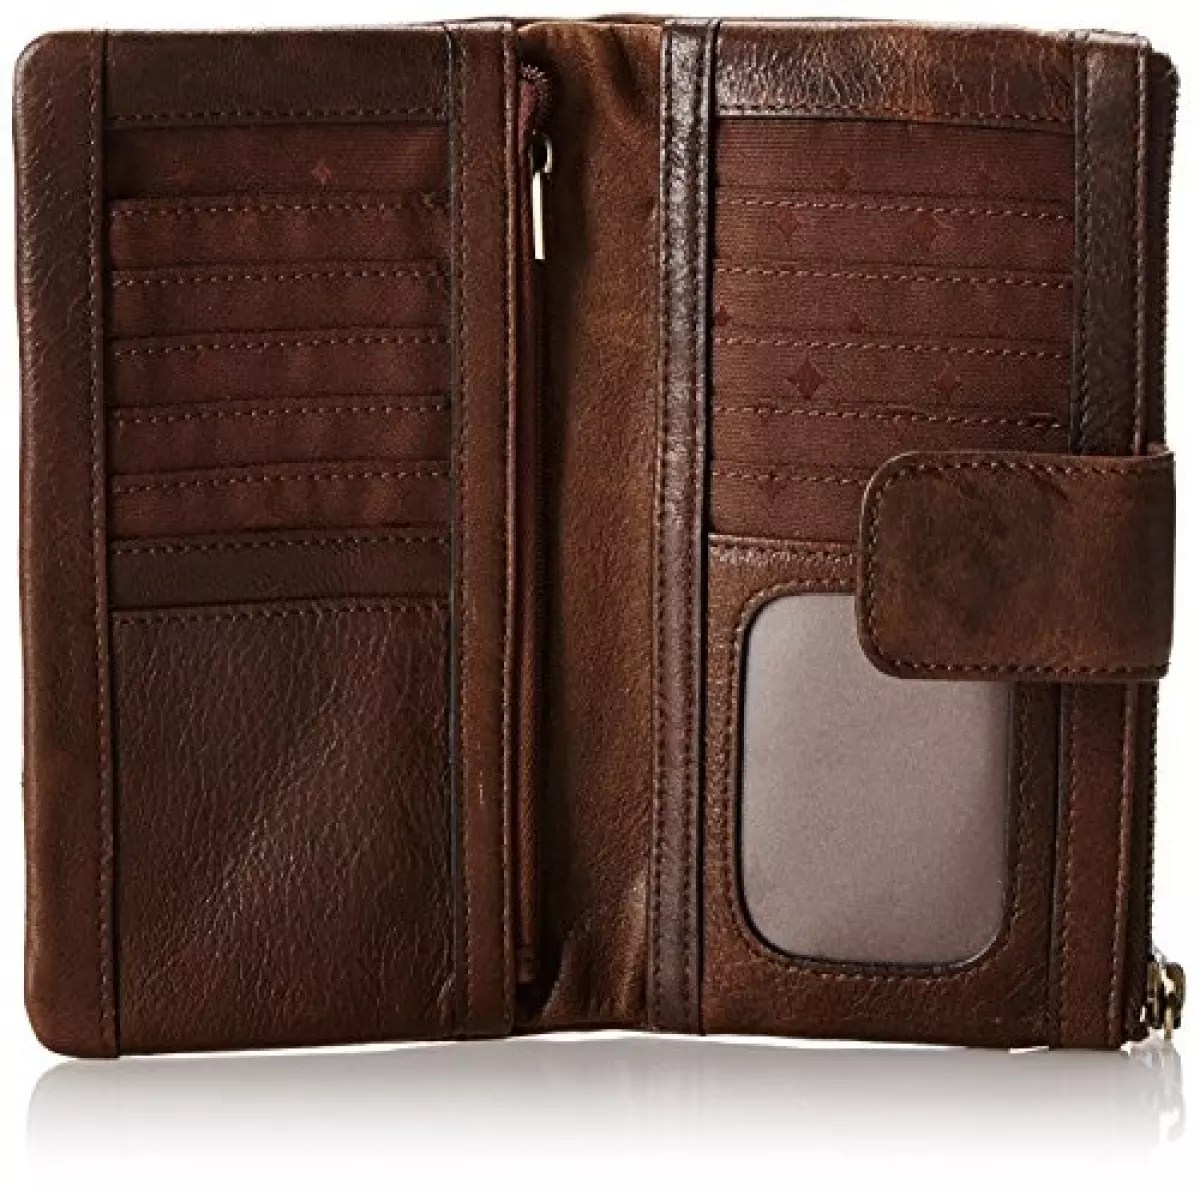 fossil emory wallet espresso one size